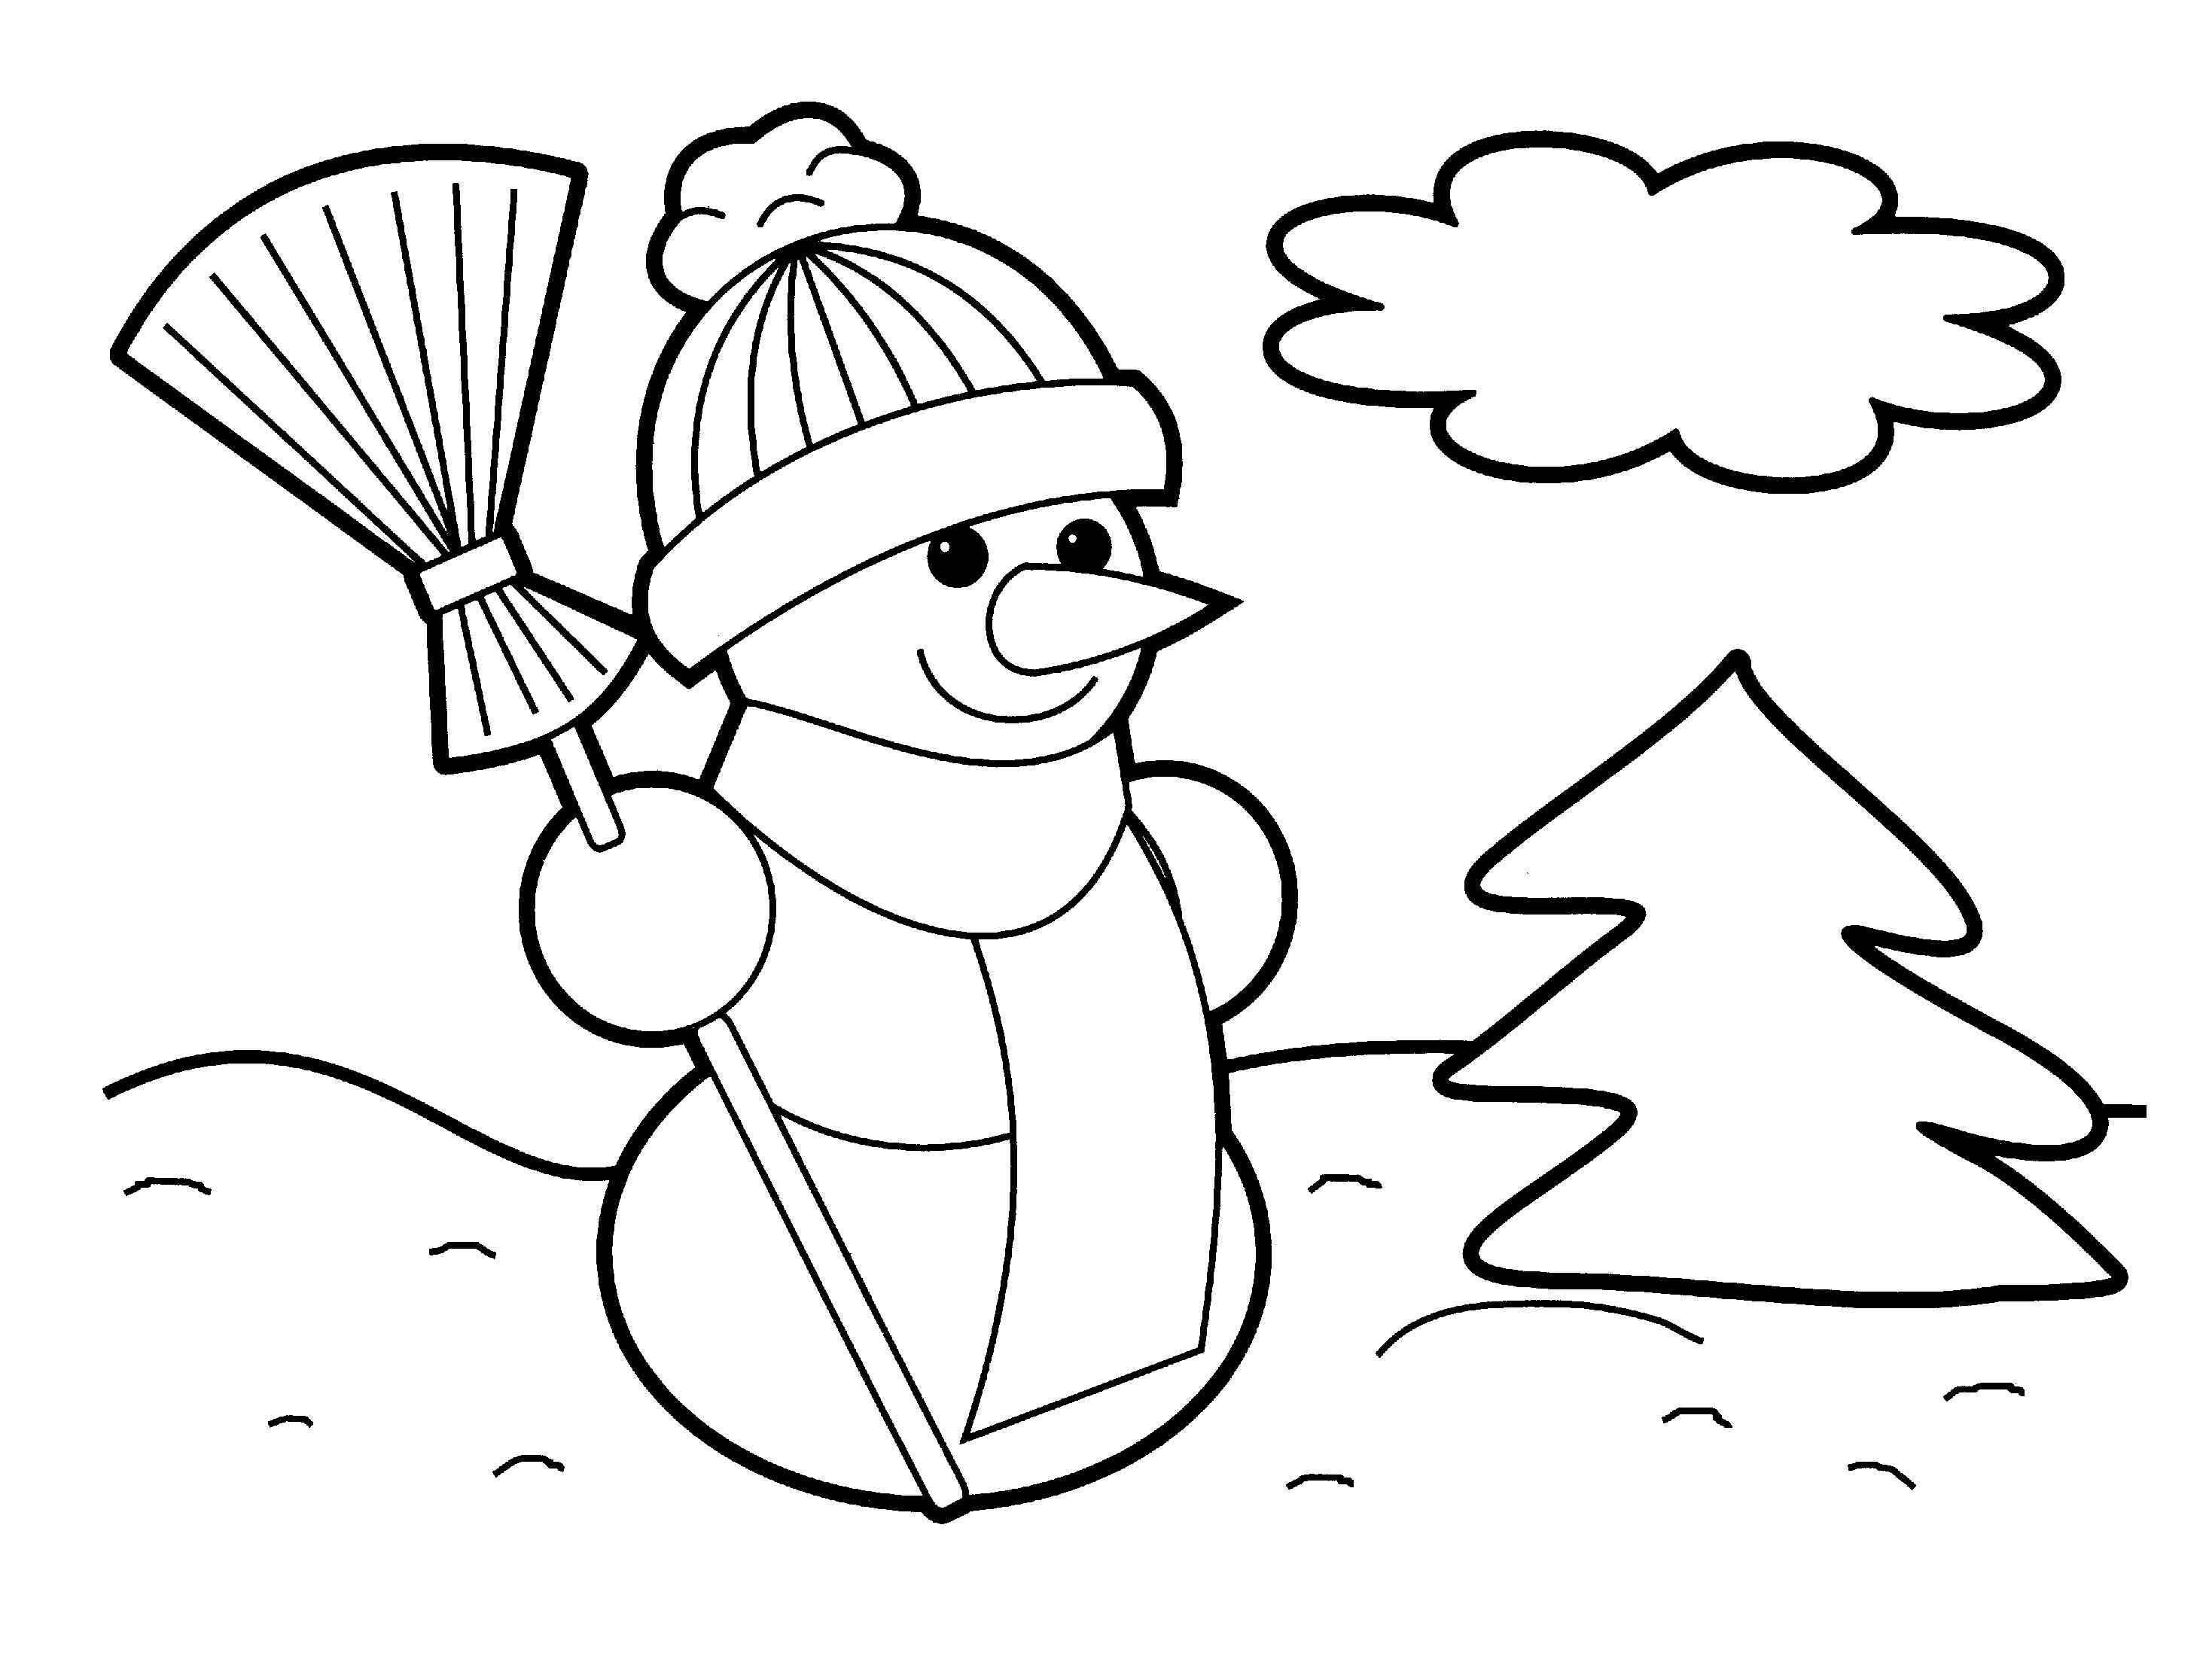 Oriental Trading Coloring Pages Elegant Pinterest Christmas Color Printable Christmas Coloring Pages Free Christmas Coloring Pages Christmas Tree Coloring Page